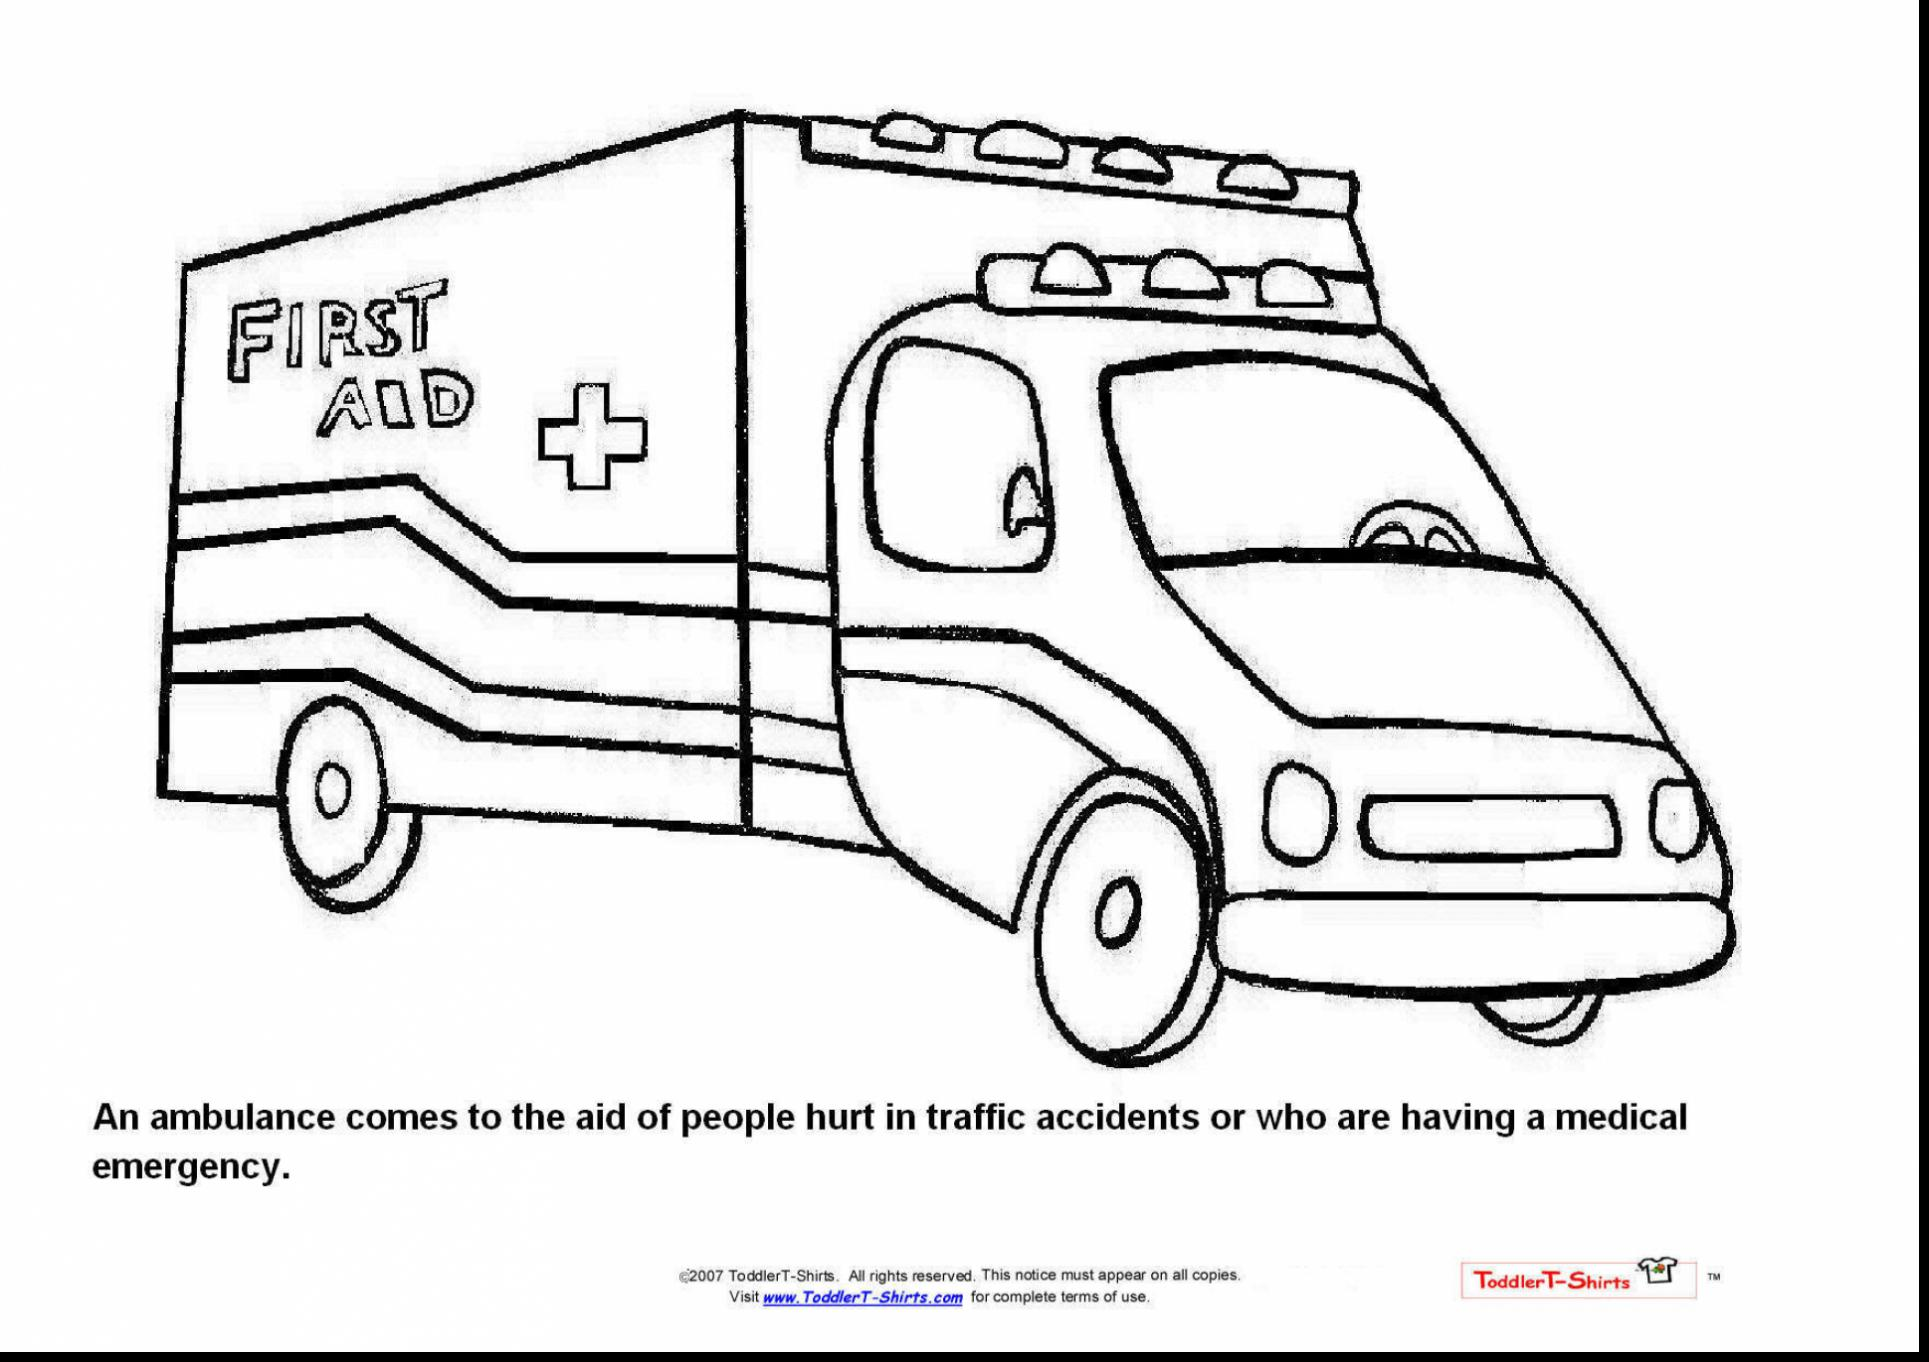 how to draw fire truck simple fire truck drawing at getdrawings free download fire how to draw truck